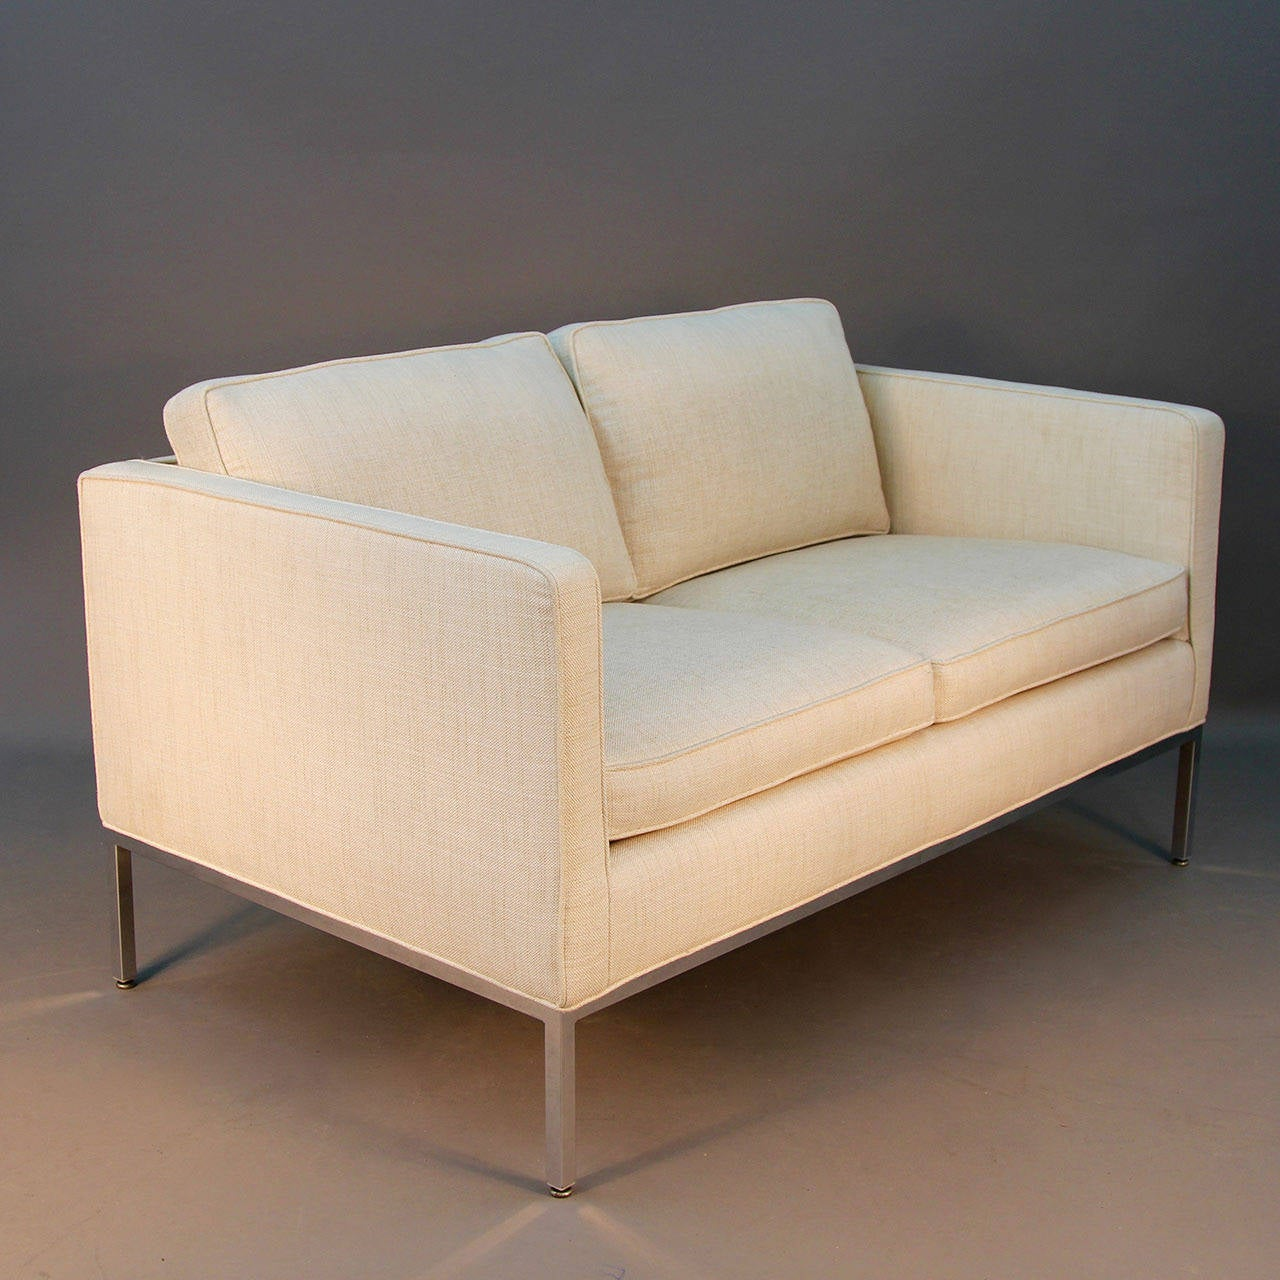 Mid-Century Modern Milo Baughman for Thayer Coggin Signed Chrome and Linen Loveseat Sofa For Sale